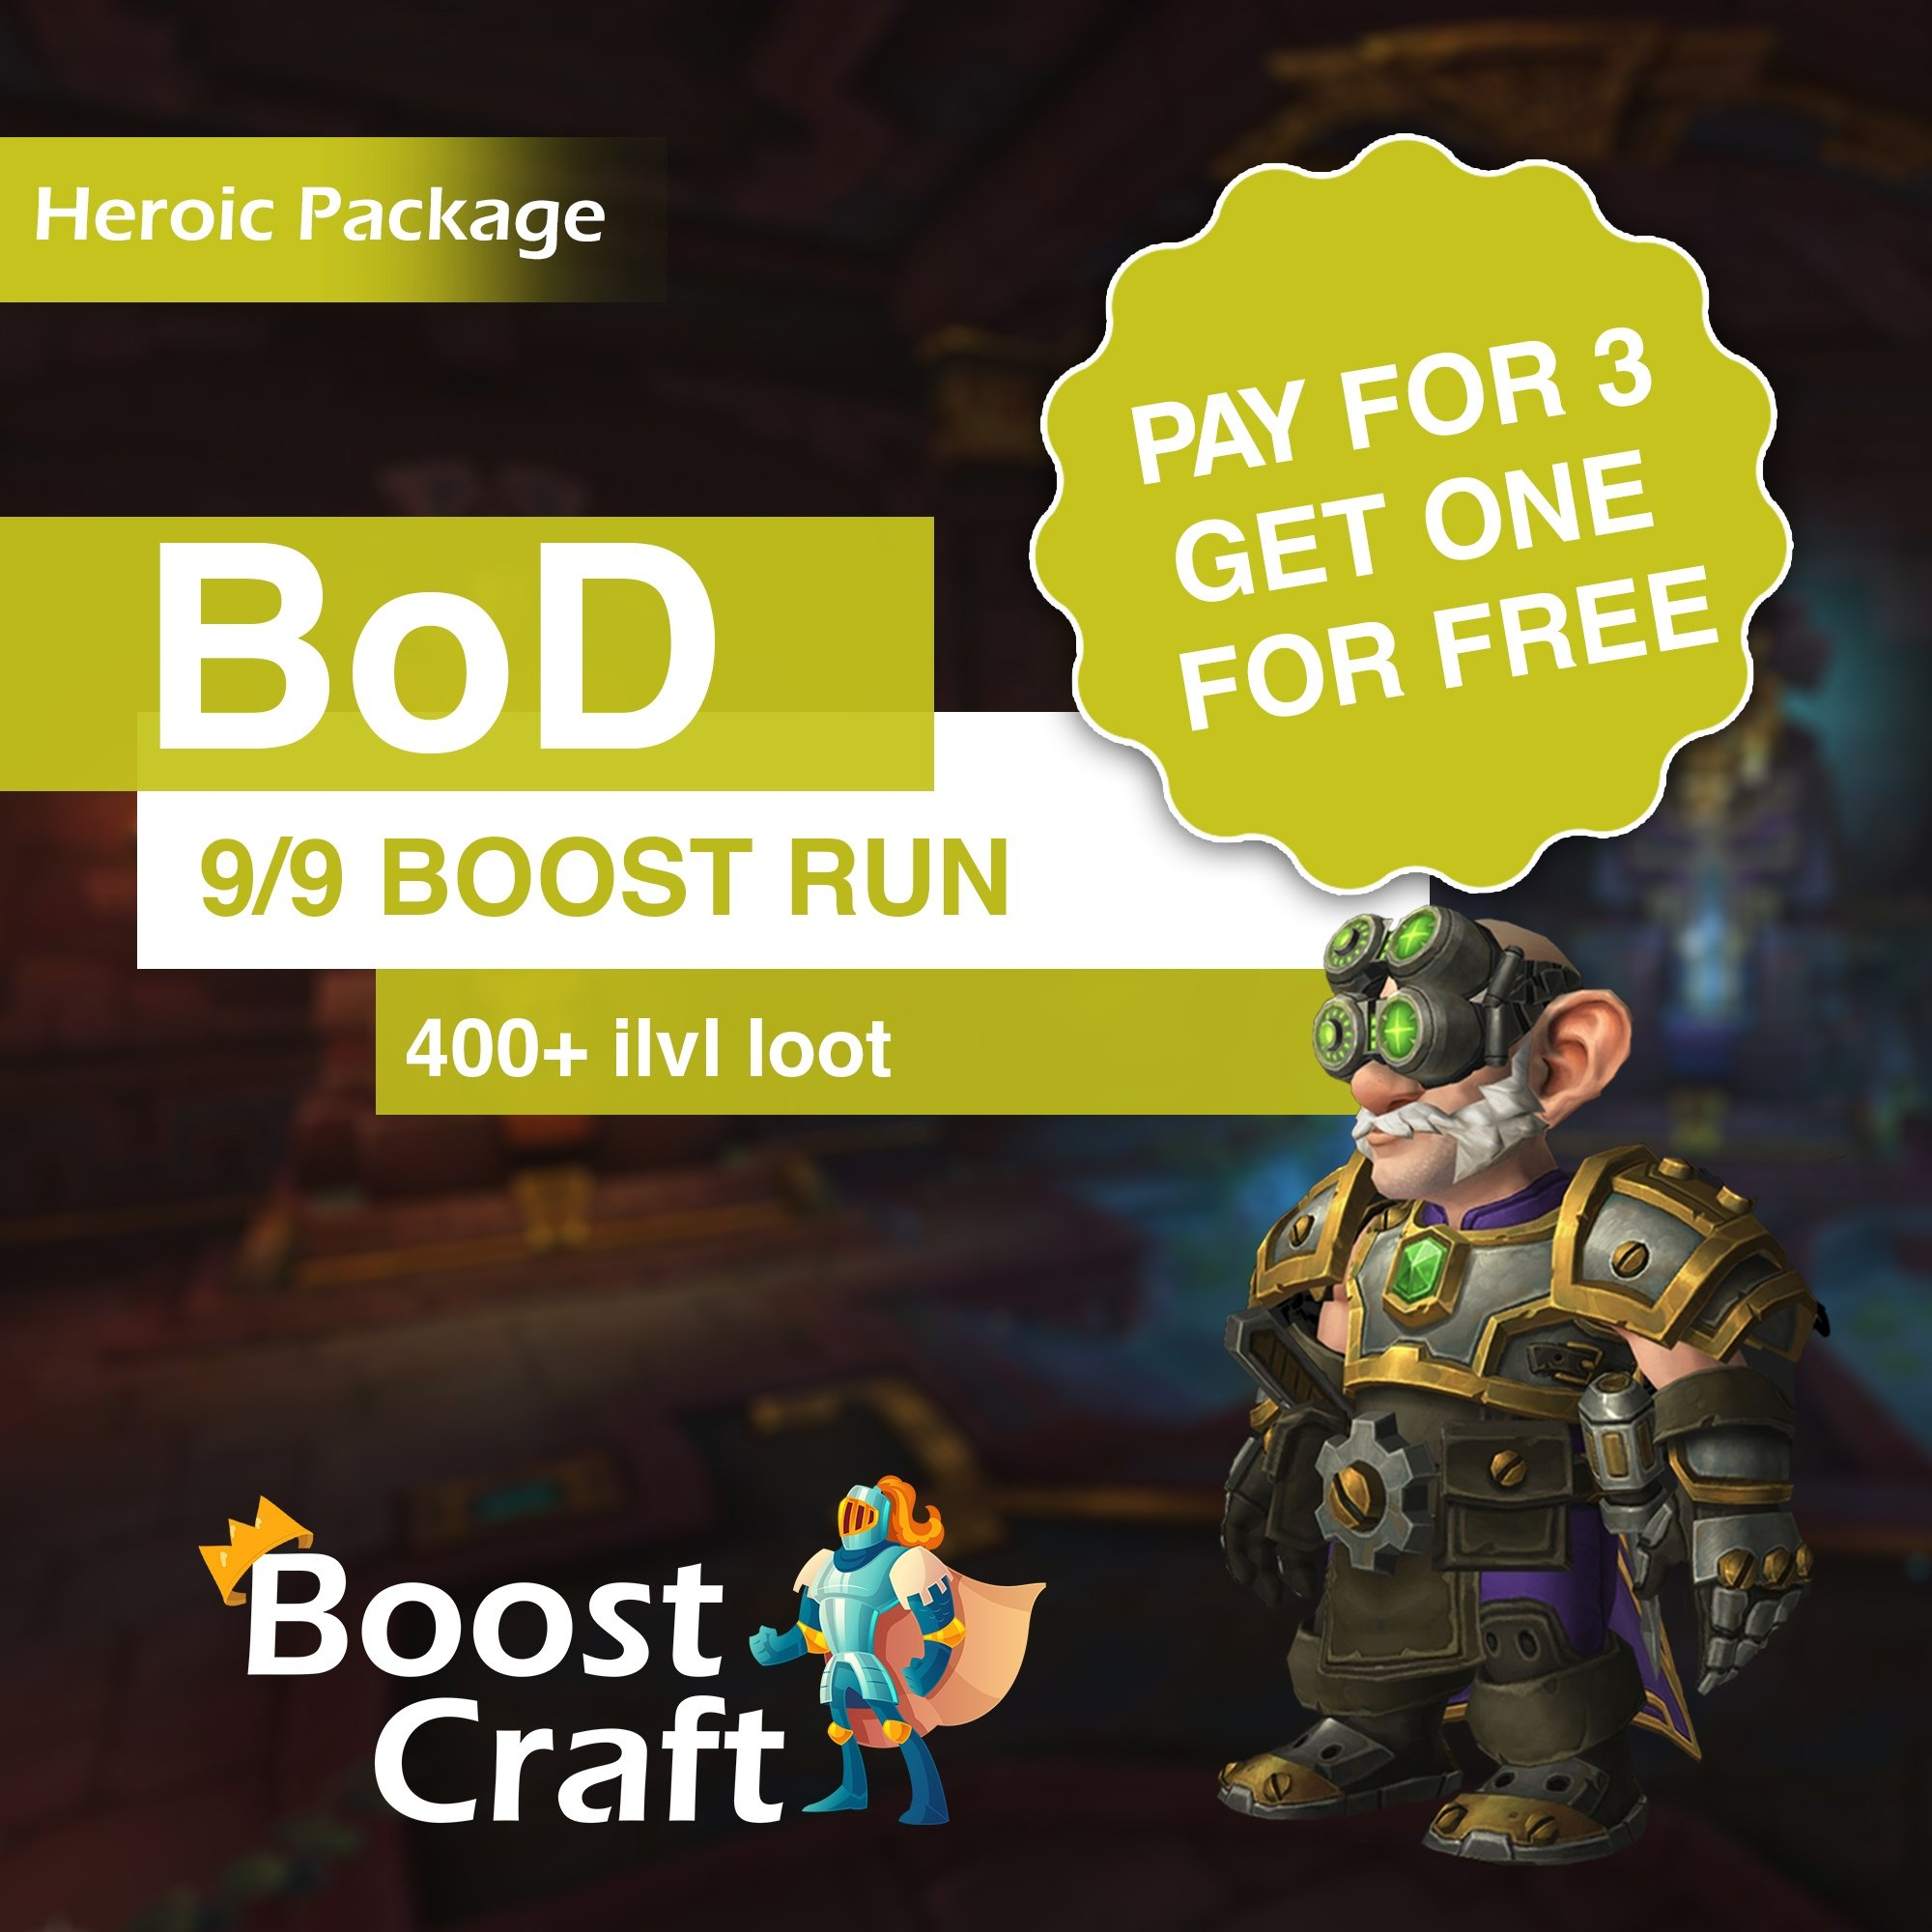 PAY FOR THREE GET ONE FREE – BoD (heroic) Special Package